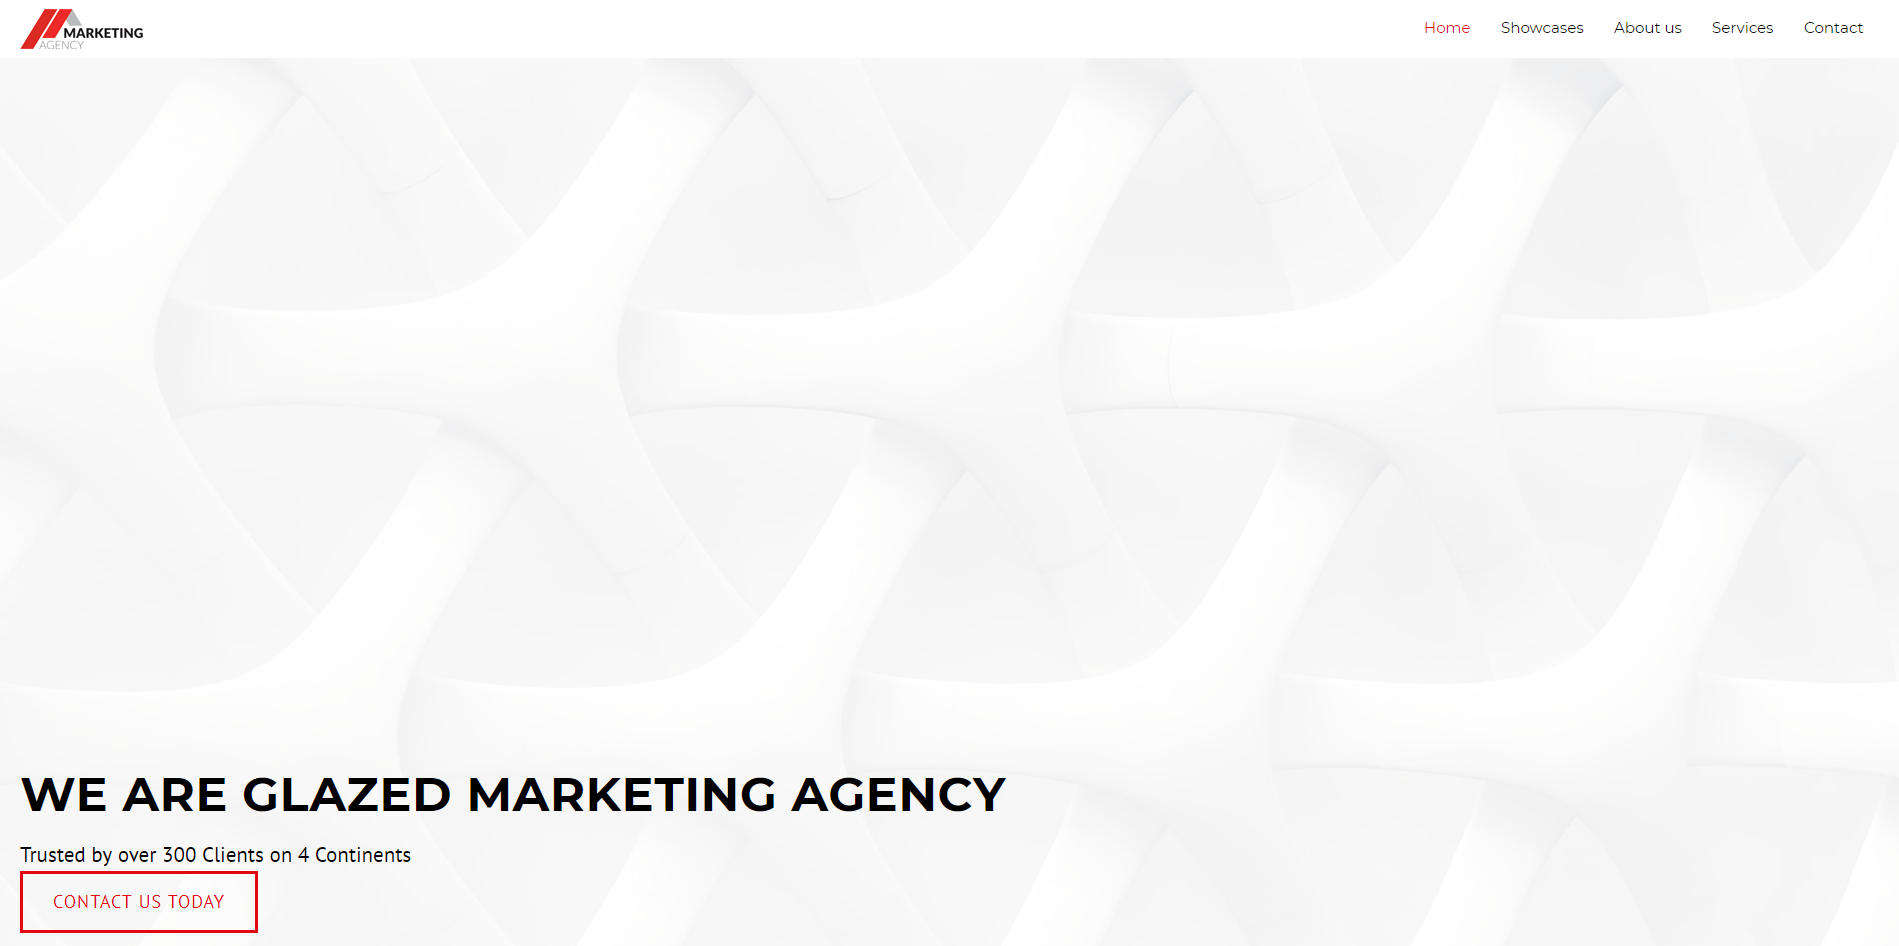 marketing enhance your Drupal experience